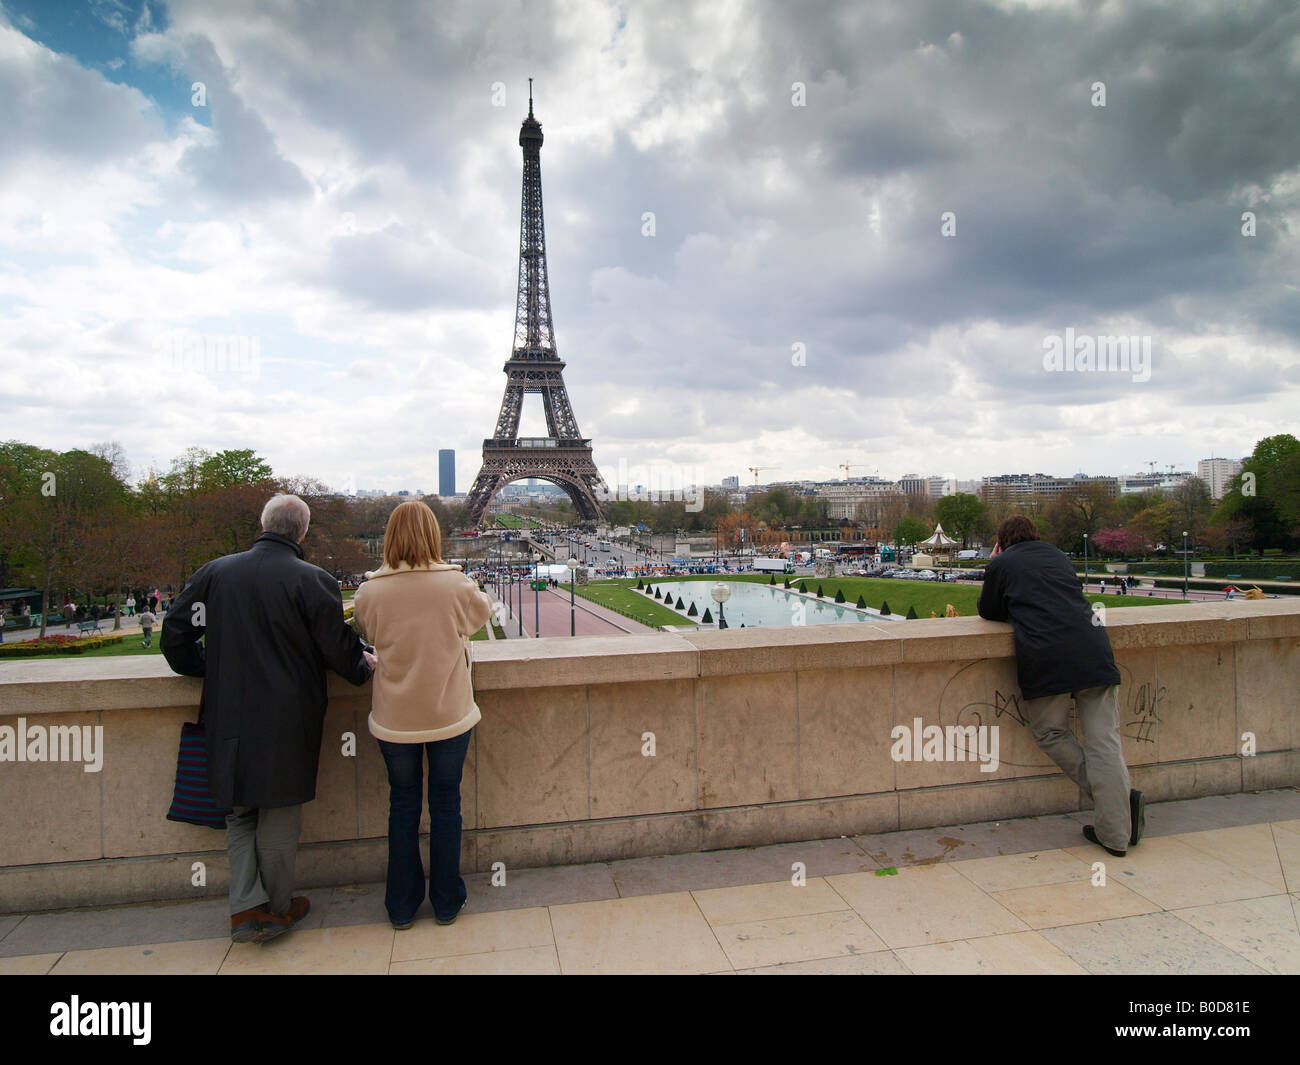 People tourists looking at the Eiffel tower from Trocadero Paris France - Stock Image